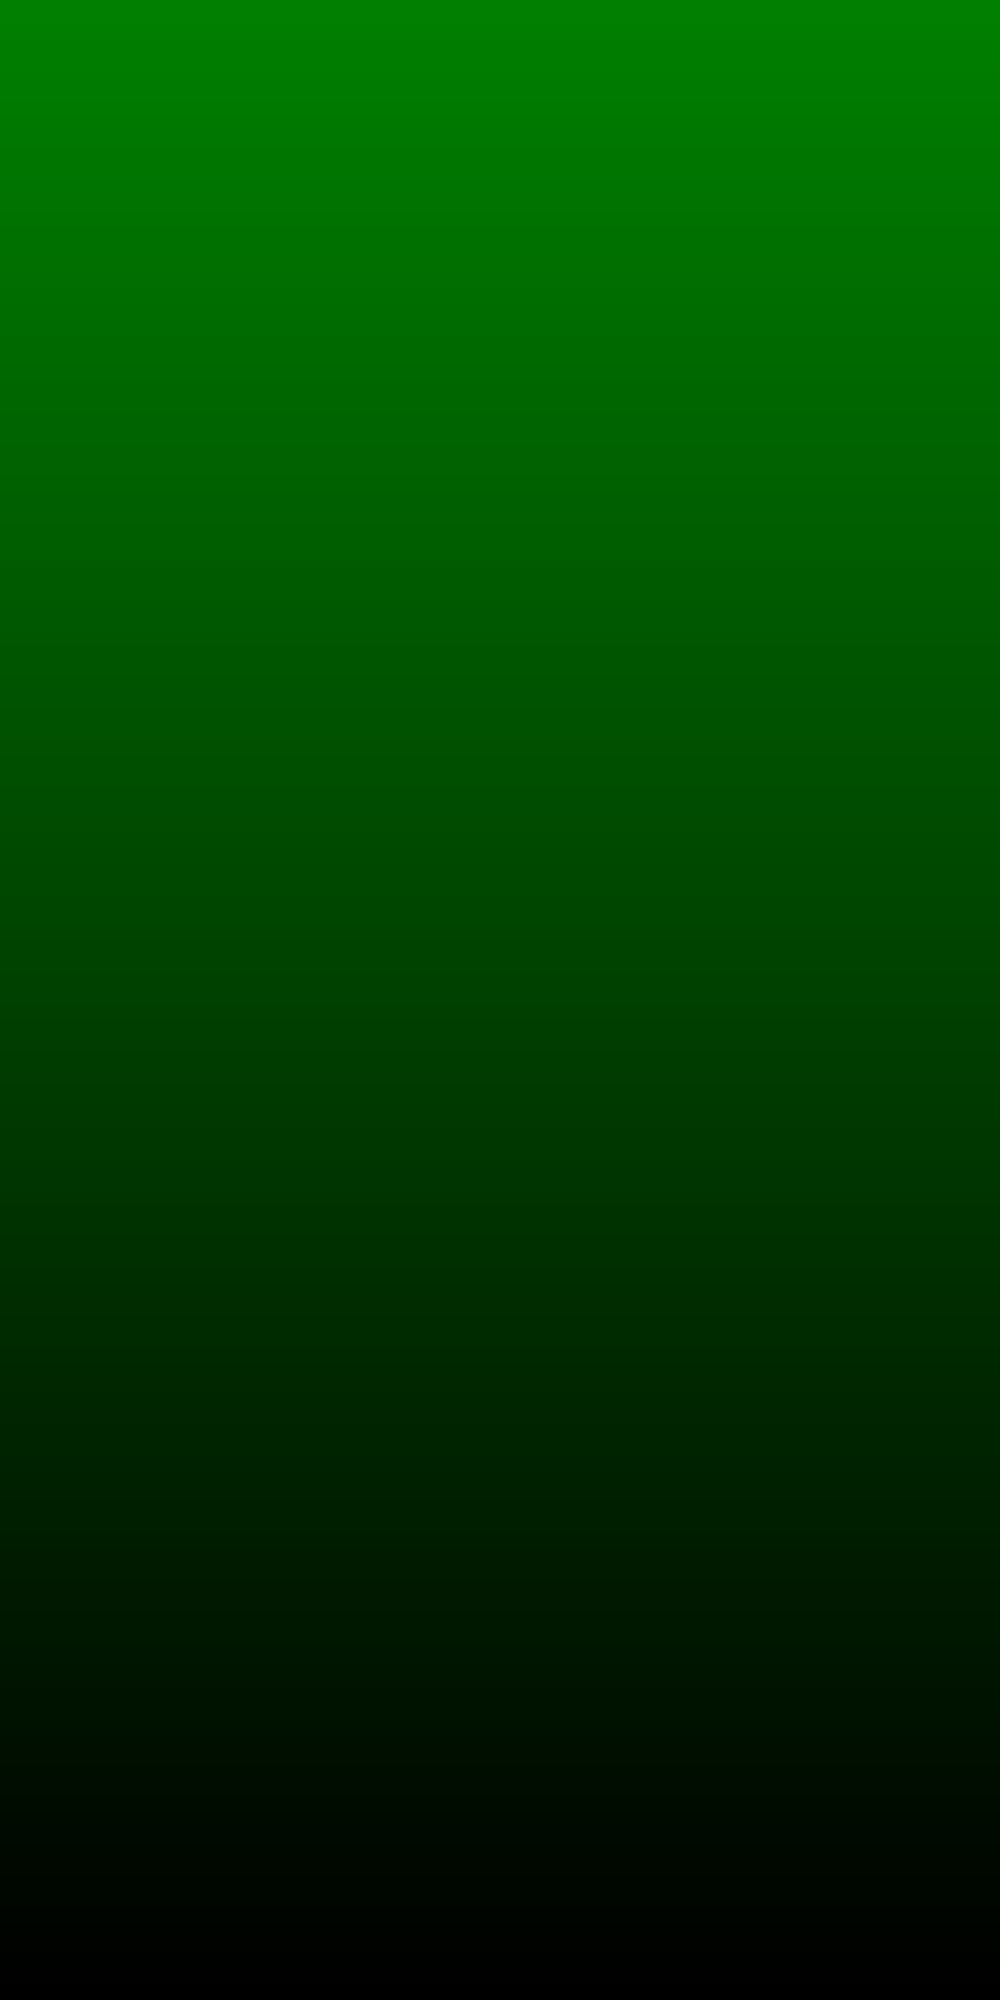 briar-android/src/androidTestOfficial/assets/green-1000x2000.png